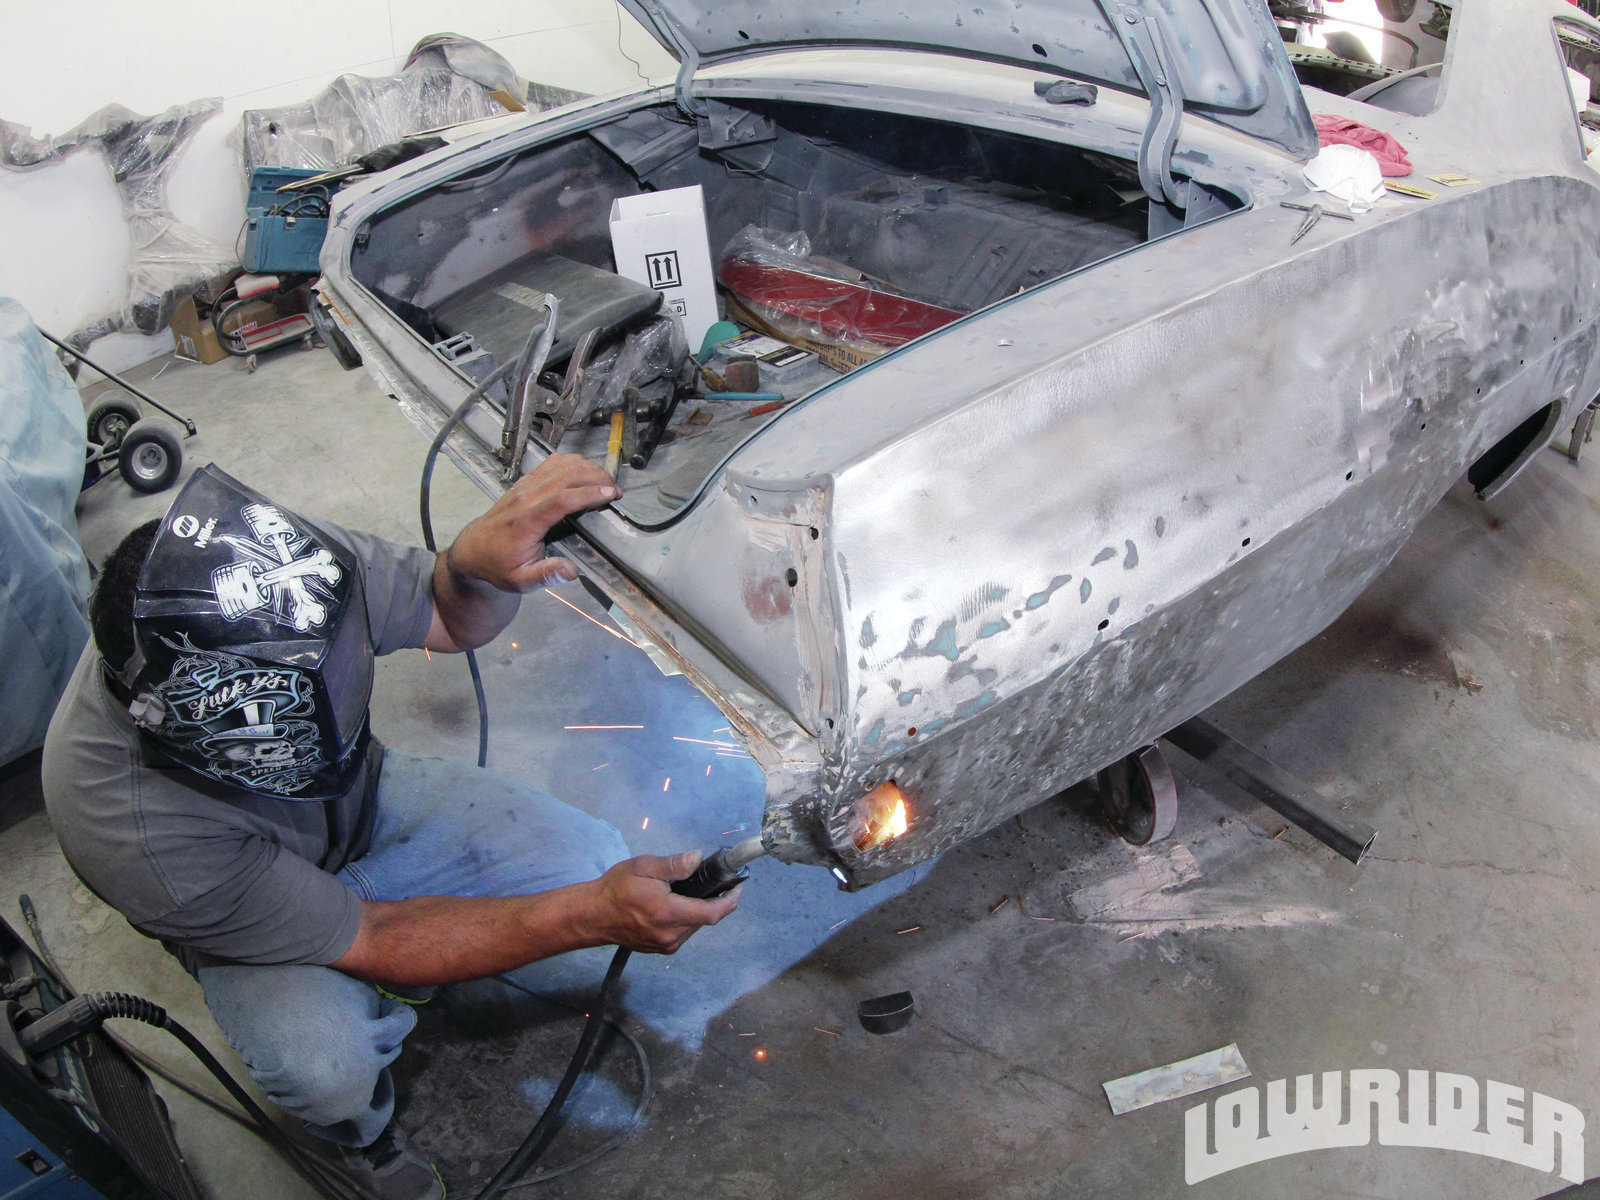 <strong>14</strong>. Luis welded the quarter panel in place as it had come loose from the original damage.